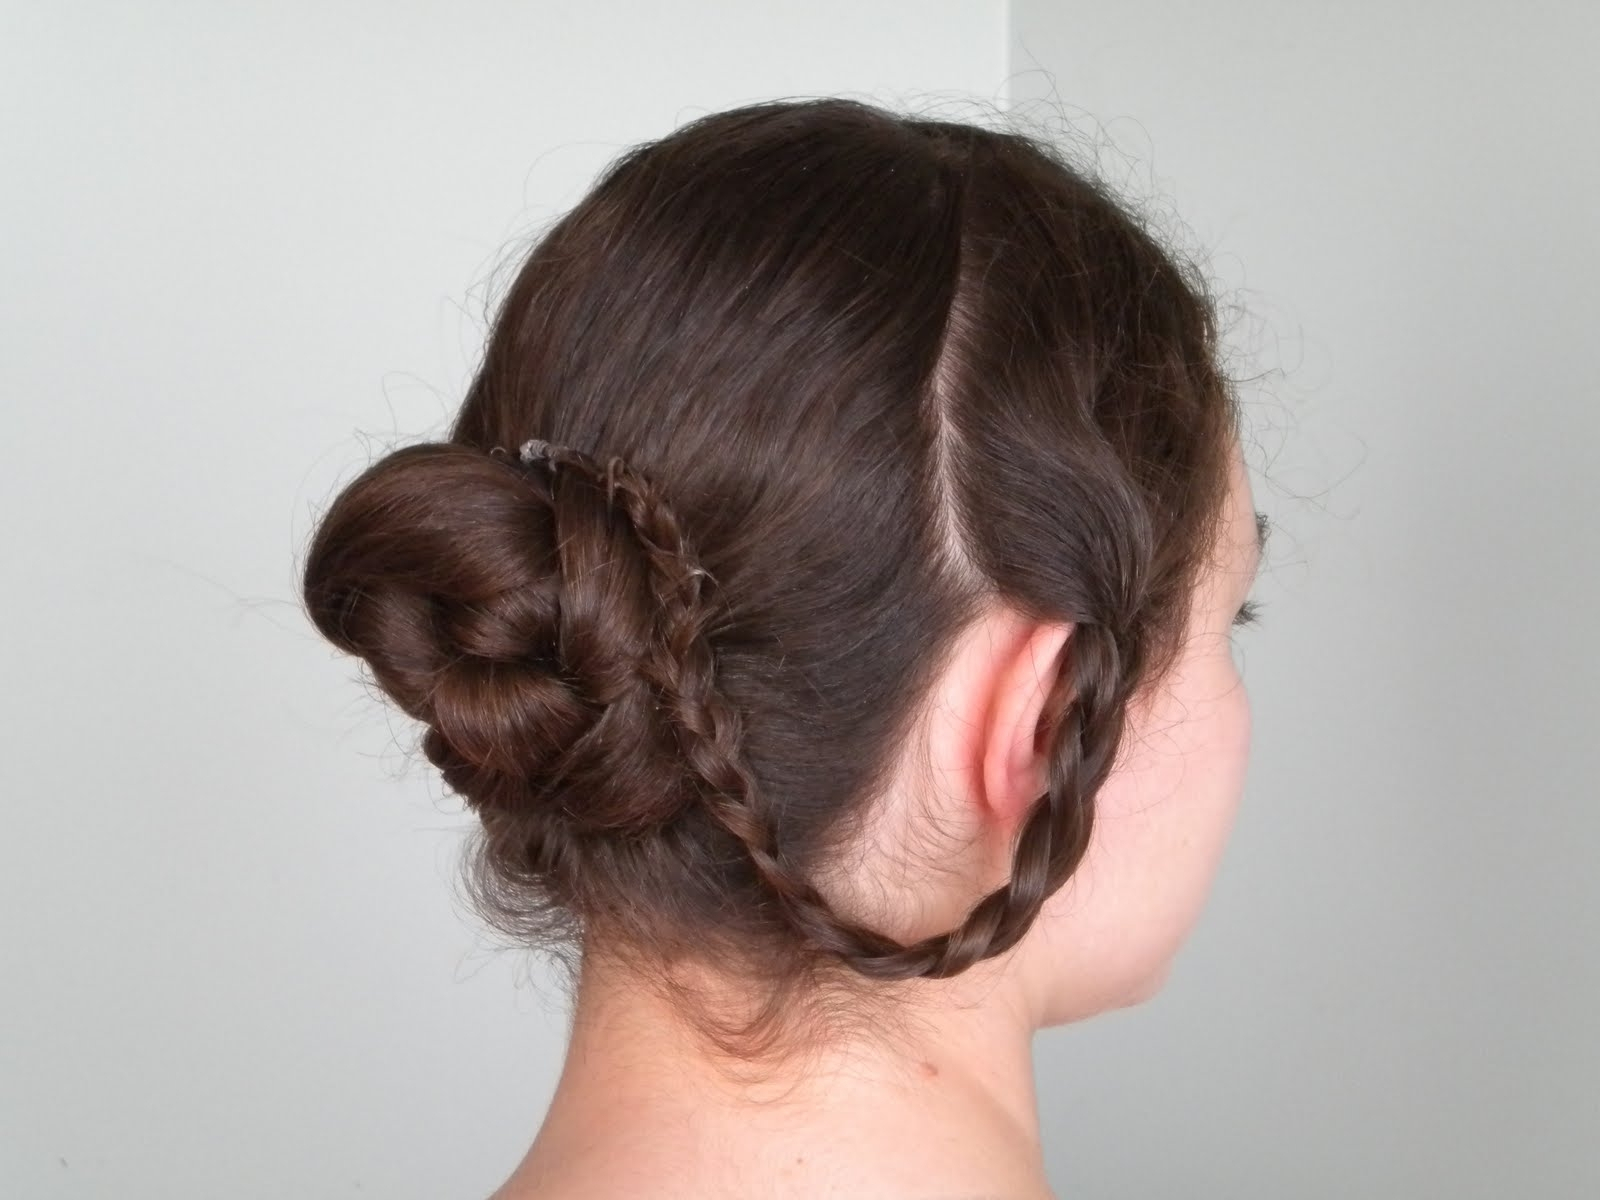 Most Popular Braided Victorian Hairstyles Throughout Hair Styles Braided Victorian Hairstyle How To Style Of Braids (View 10 of 15)